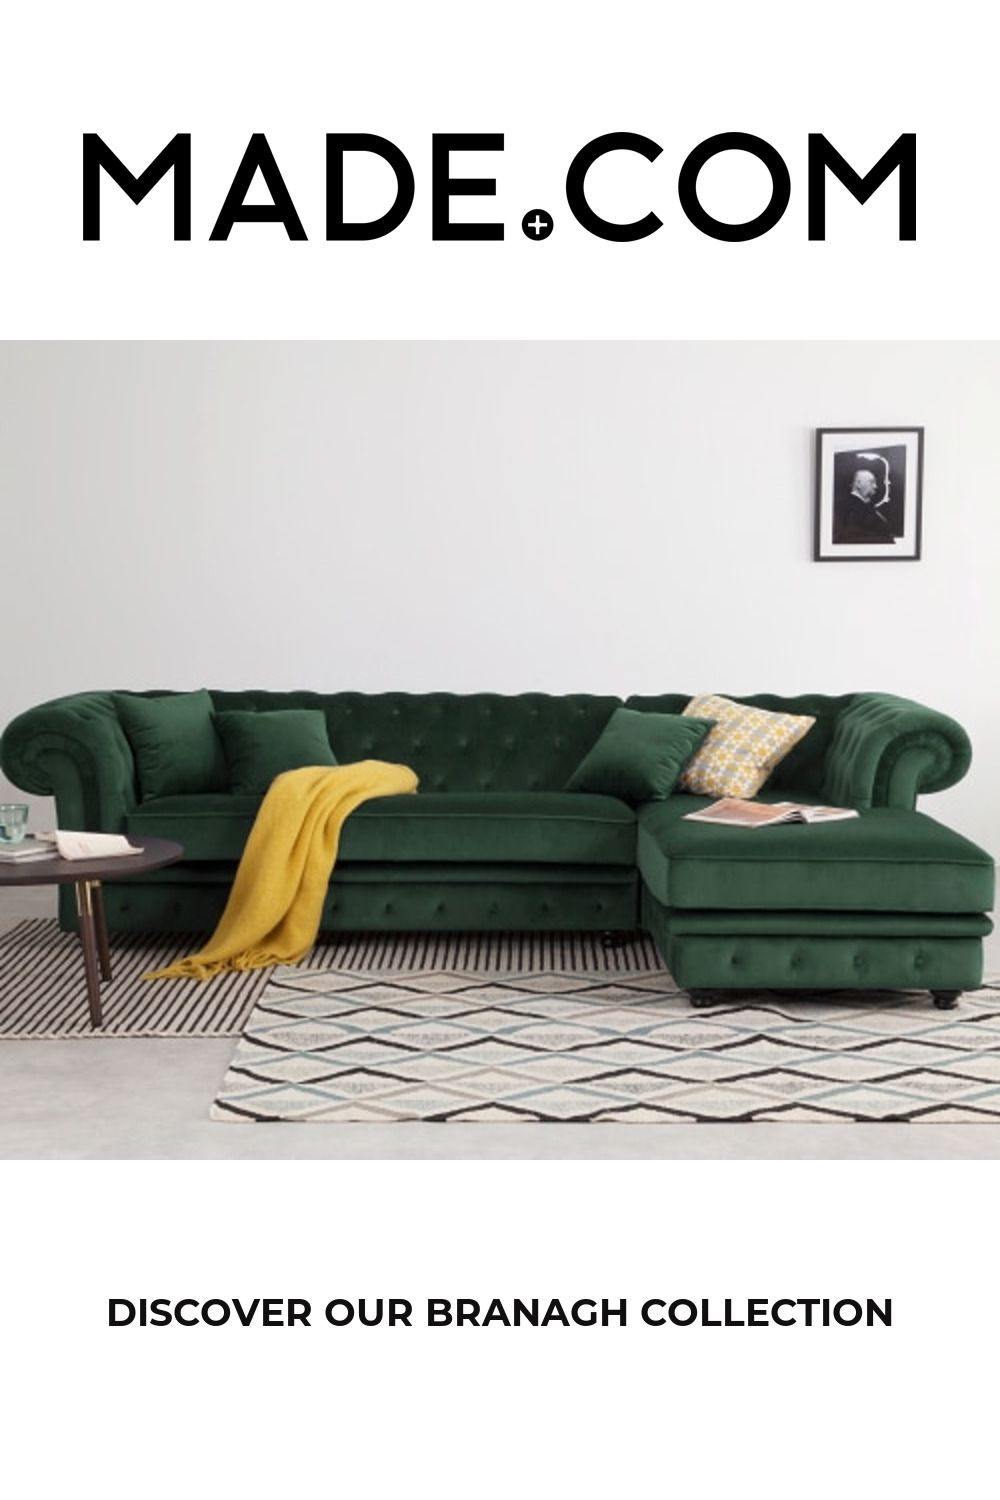 Branagh Right Hand Facing Chaise End Corner Sofa Pine Green Velvet In 2020 Velvet Corner Sofa Corner Sofa Sofa